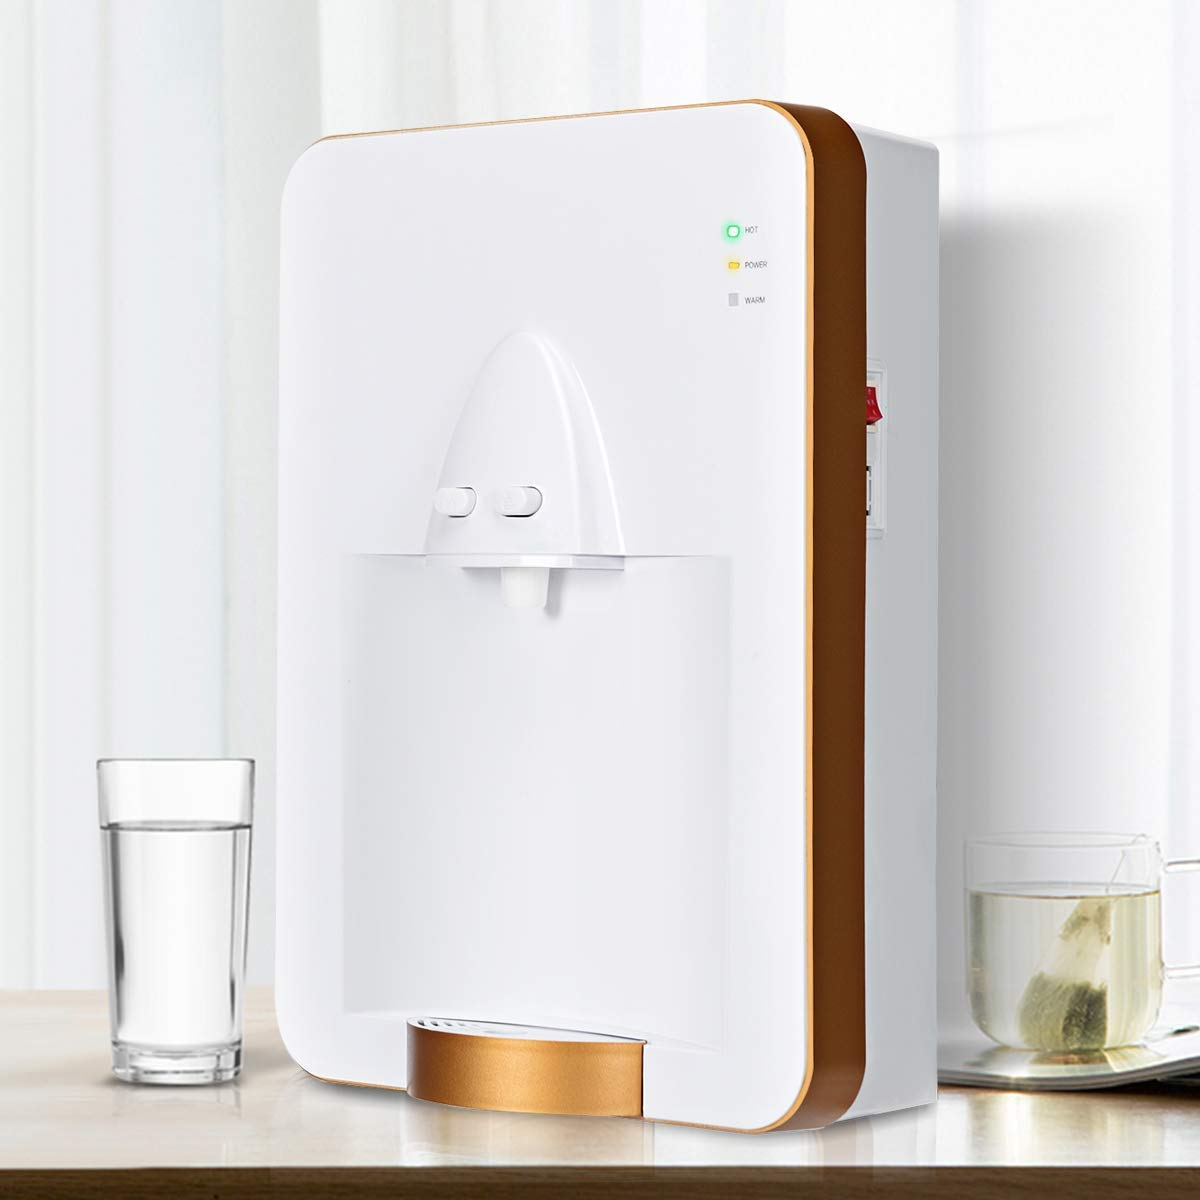 Goplus Small Water Dispenser Pipeline Wall-mounted, Quick Heating Warm and Hot Water Suitable for Home & Office